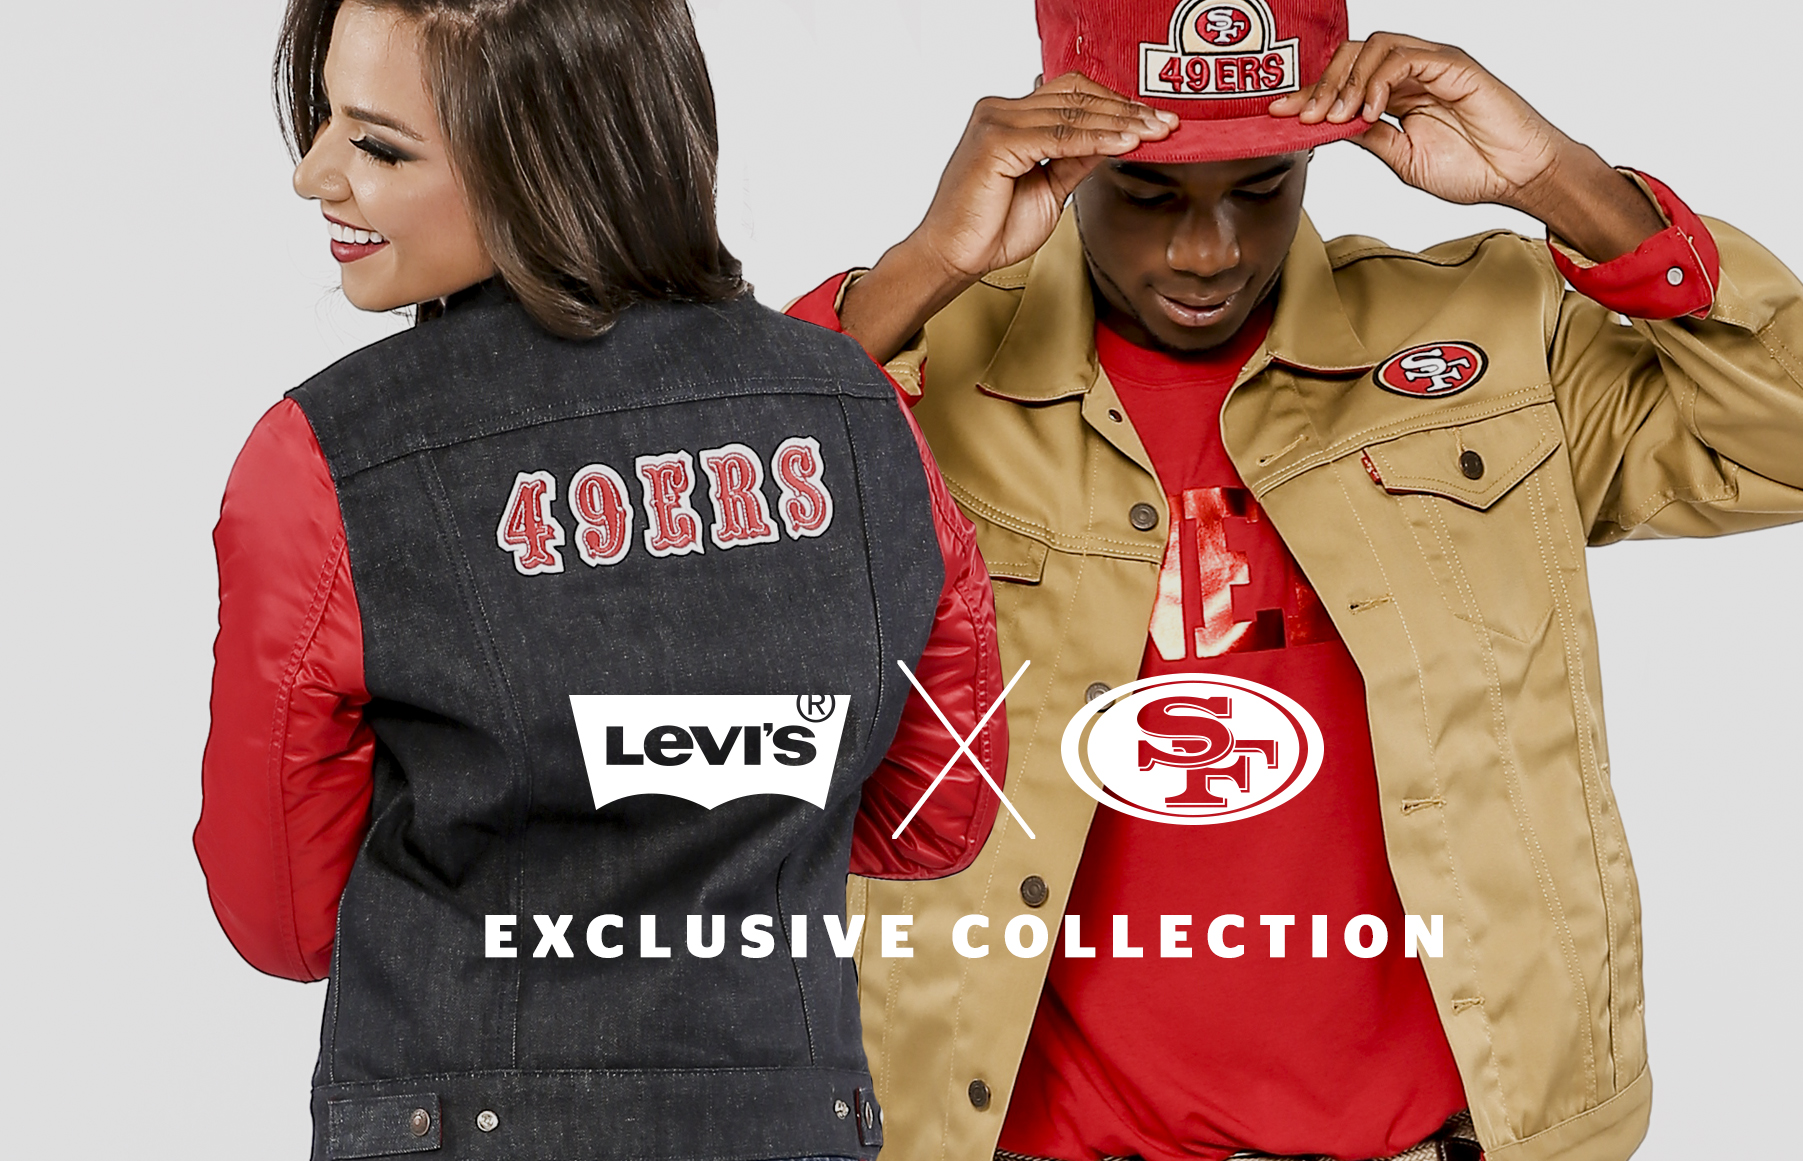 LEVIS-COLLECTION LAUNCH.jpg